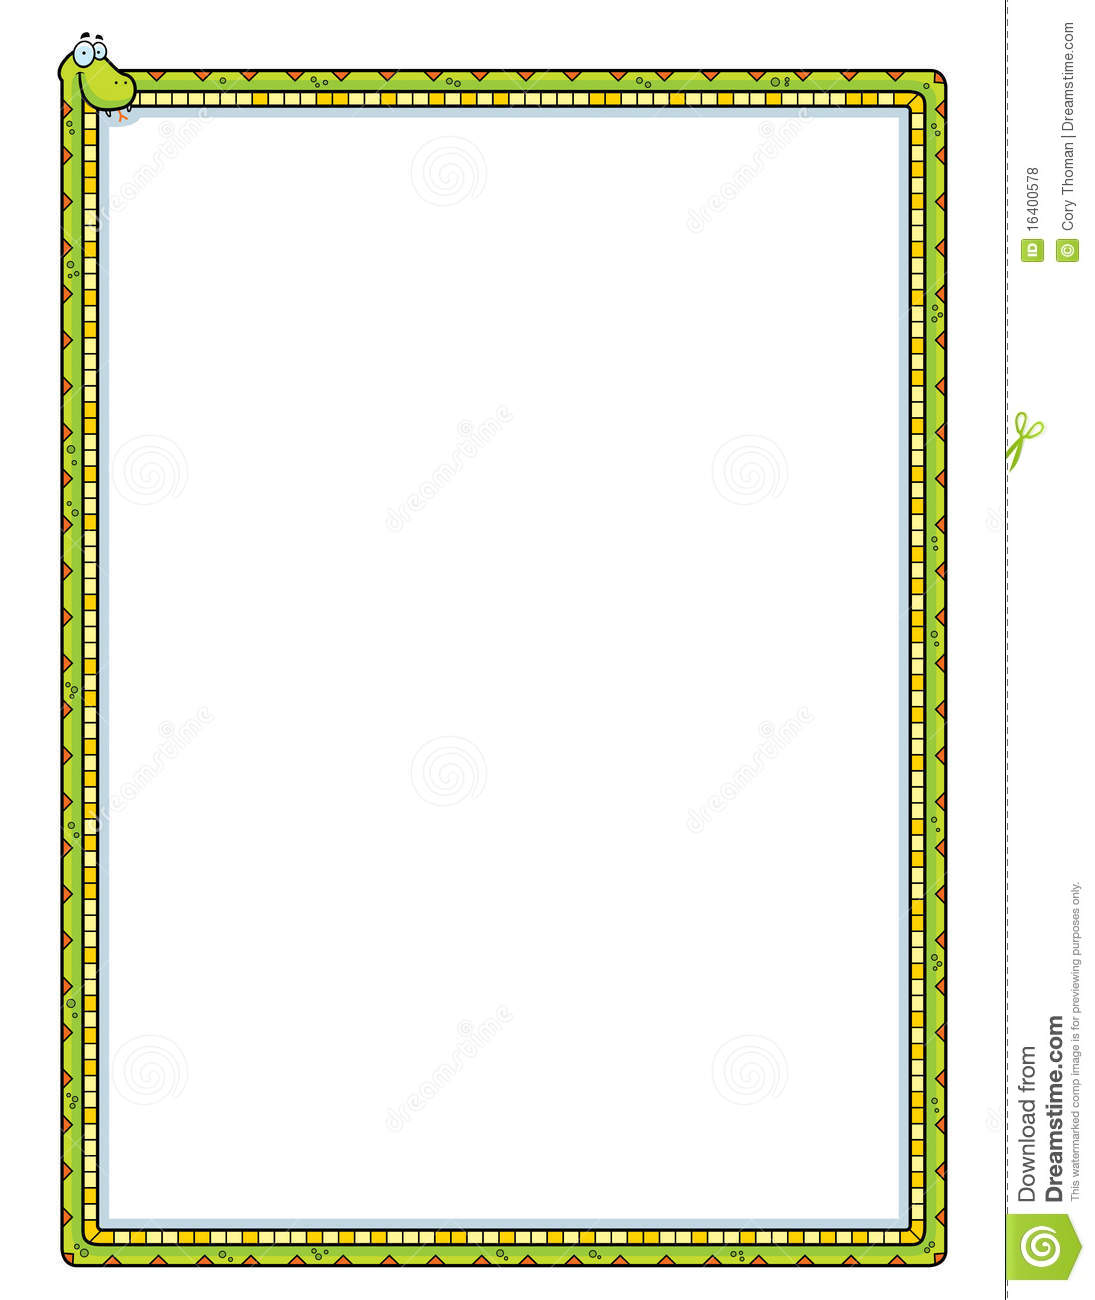 Snake Border Stock Vector Illustration Of Long Design